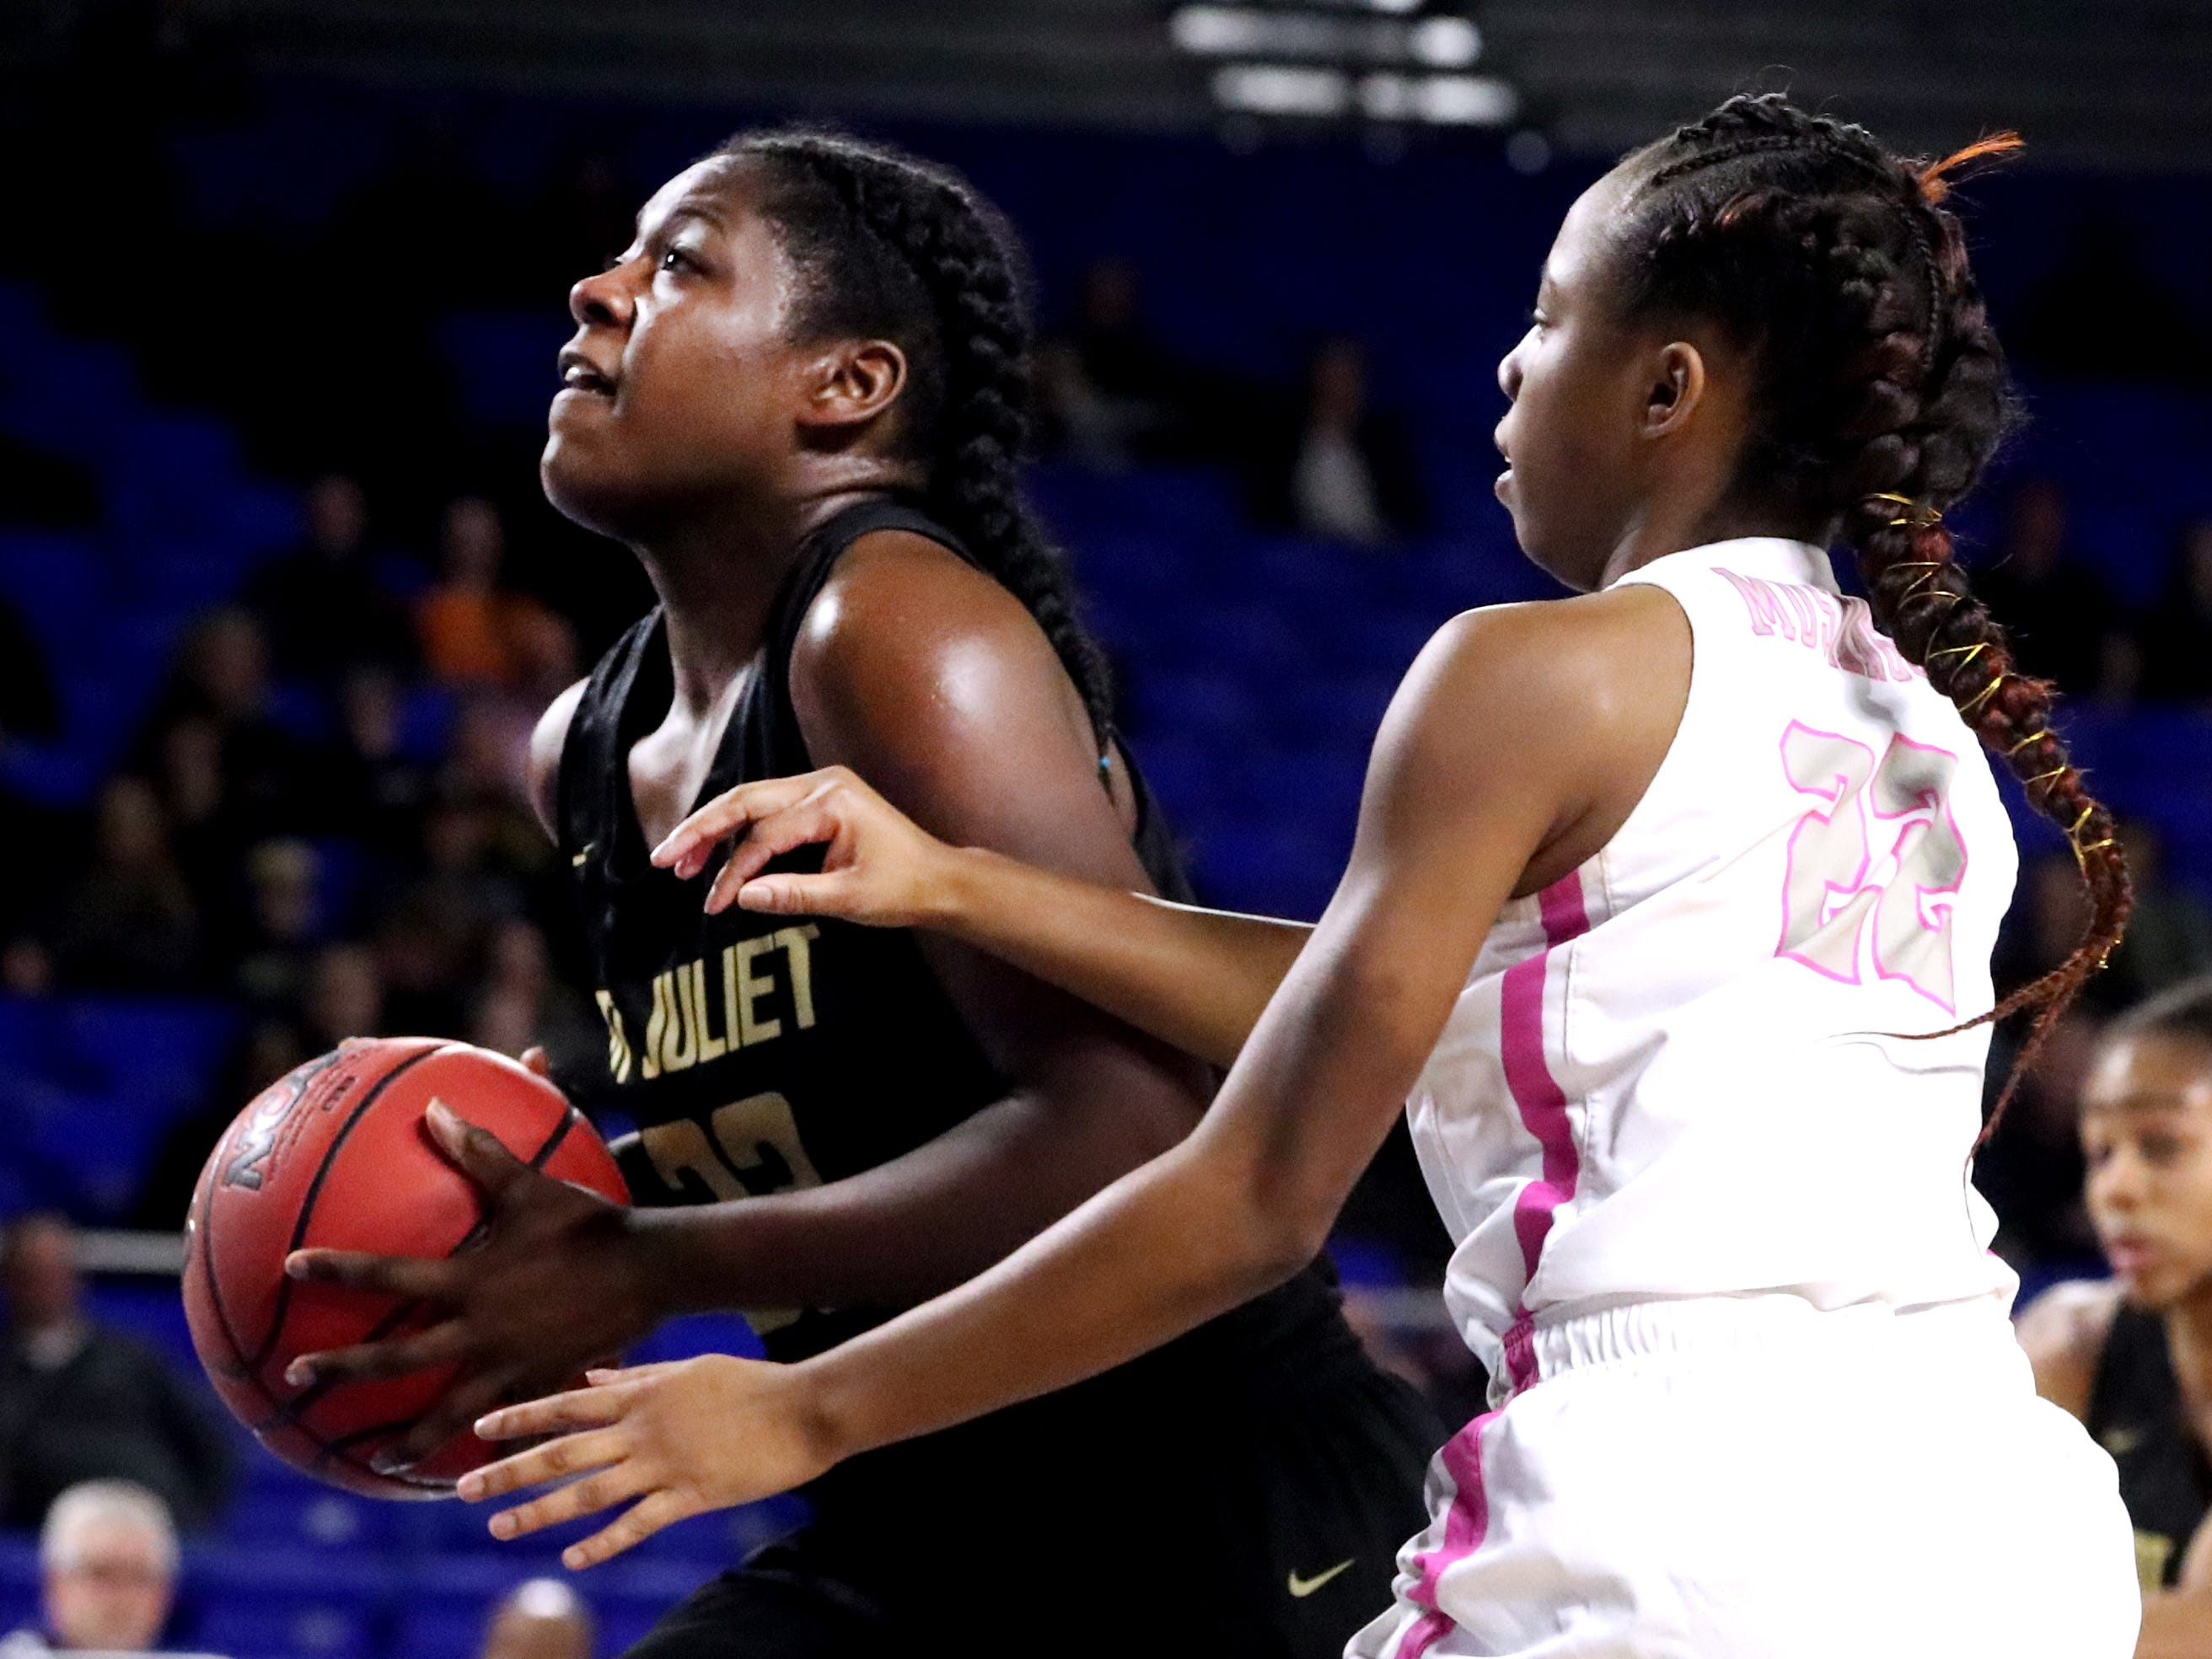 Mt. Juliet's Reghan Grimes (33) heads to the basket as Houston's Nakiyah Westbrook (22) guards her during the quarterfinal round of the TSSAA Div. 1 Class AAA Girls State Tournament, on Wednesday, March 6, 2019, at Murphy Center in Murfreesboro, Tenn.